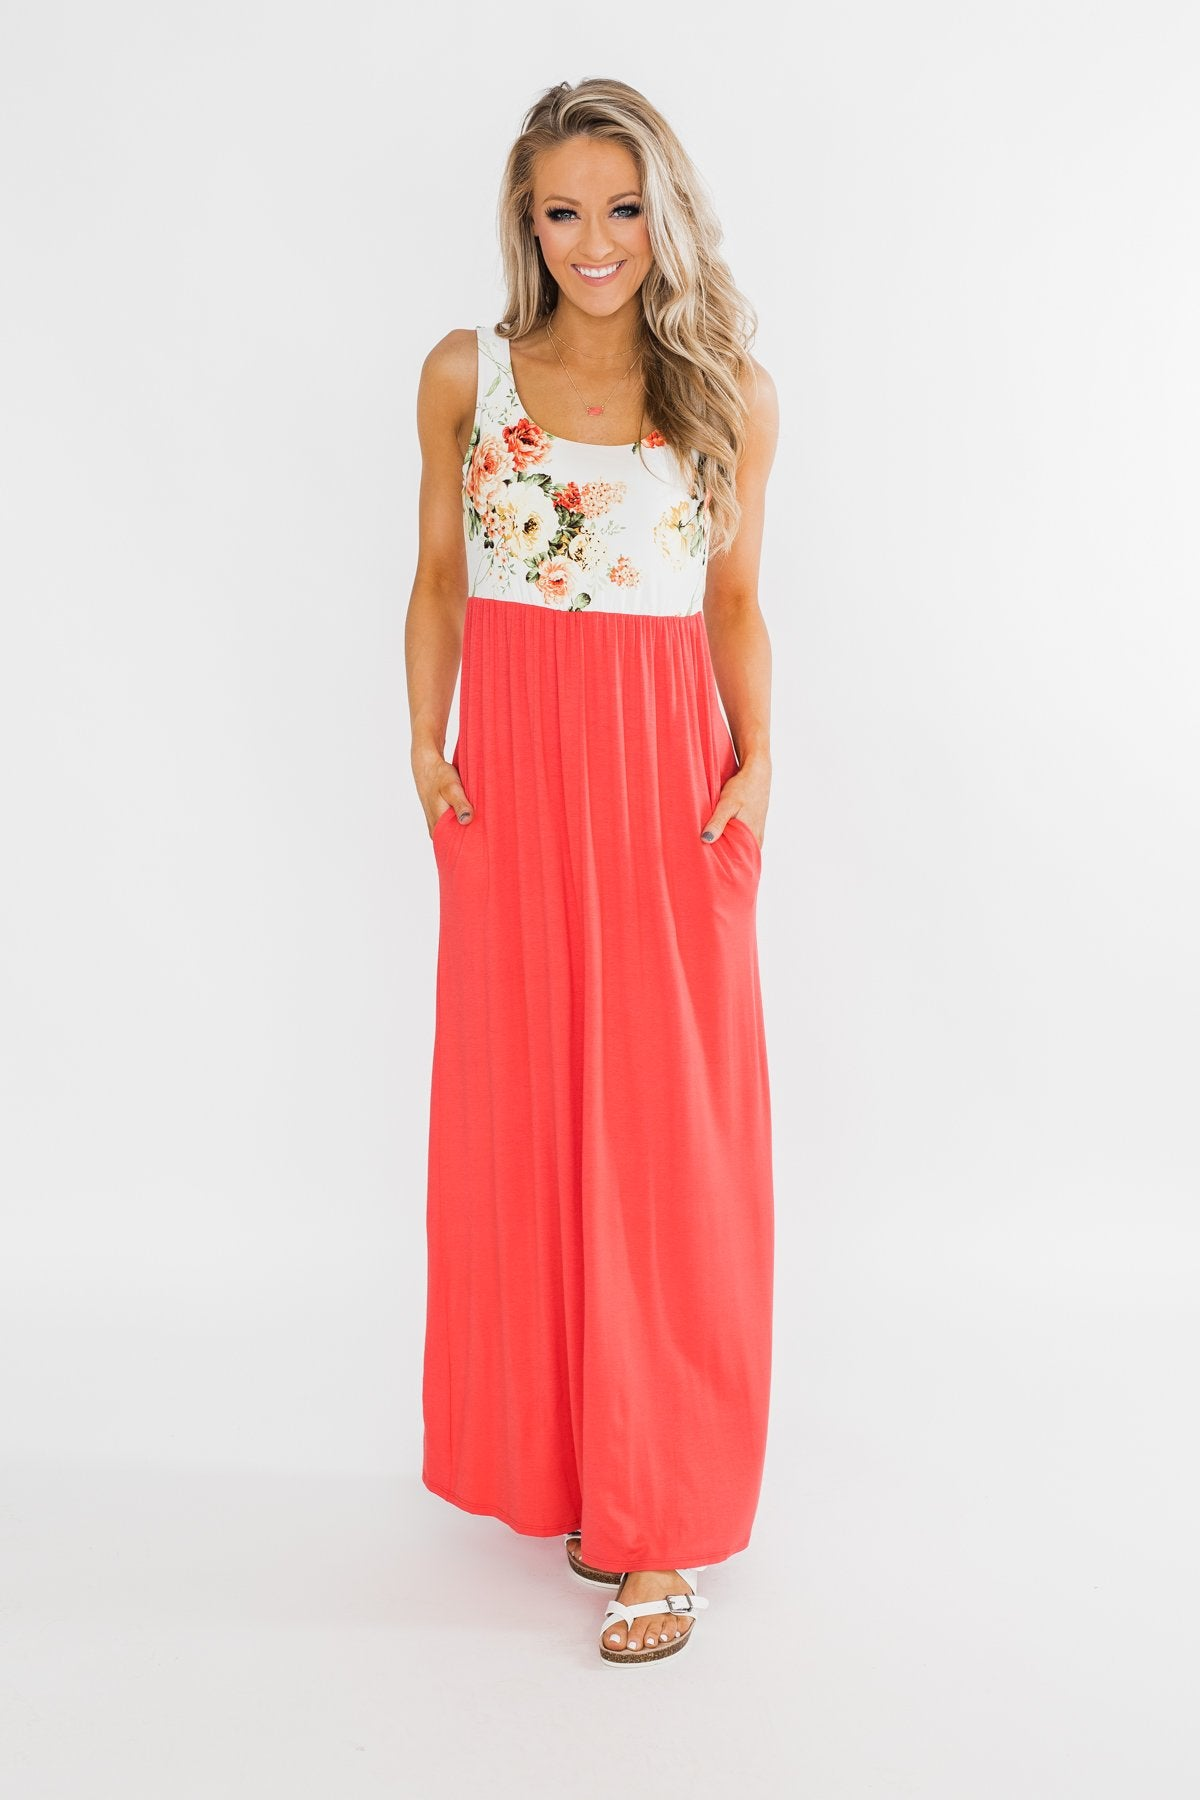 There She Goes Again Floral Maxi Dress- Vibrant Coral